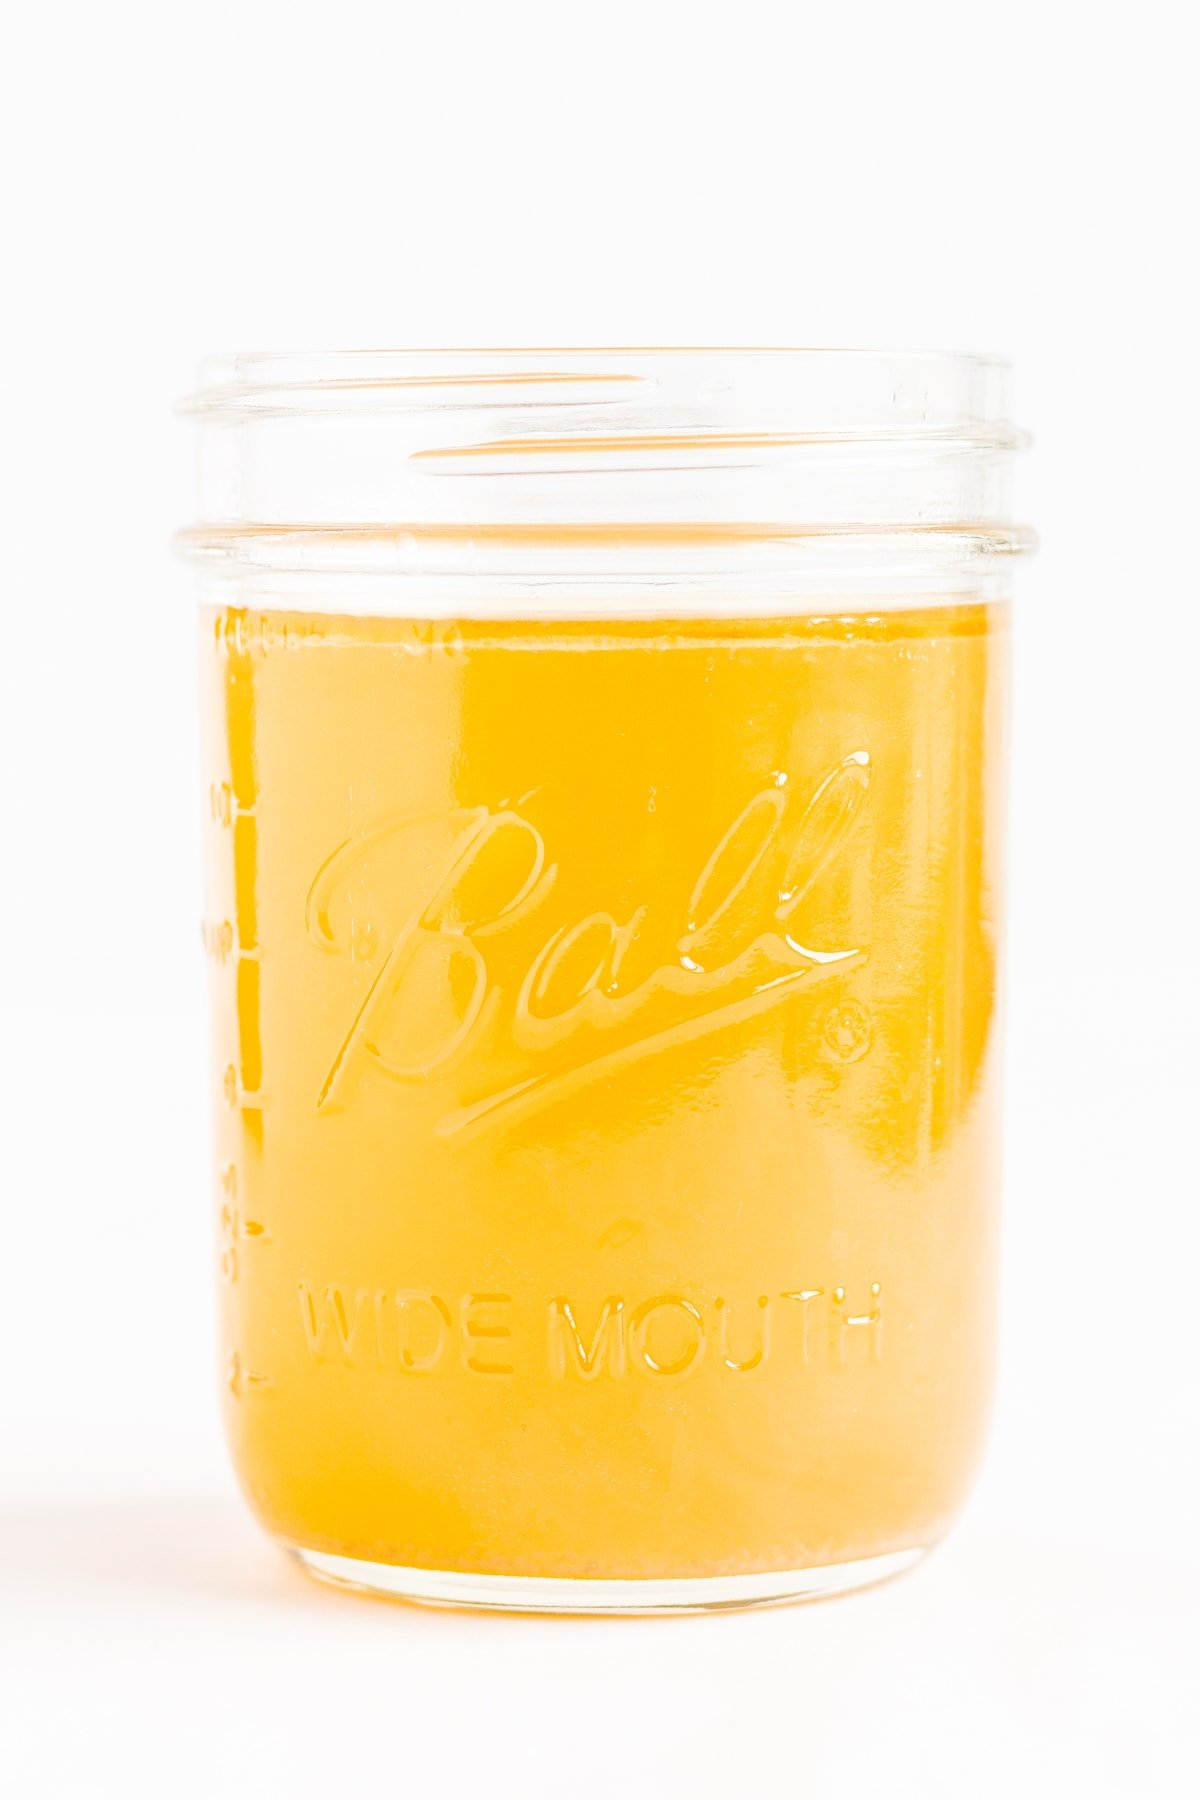 Mason jar filled with chicken bone broth on a white background.